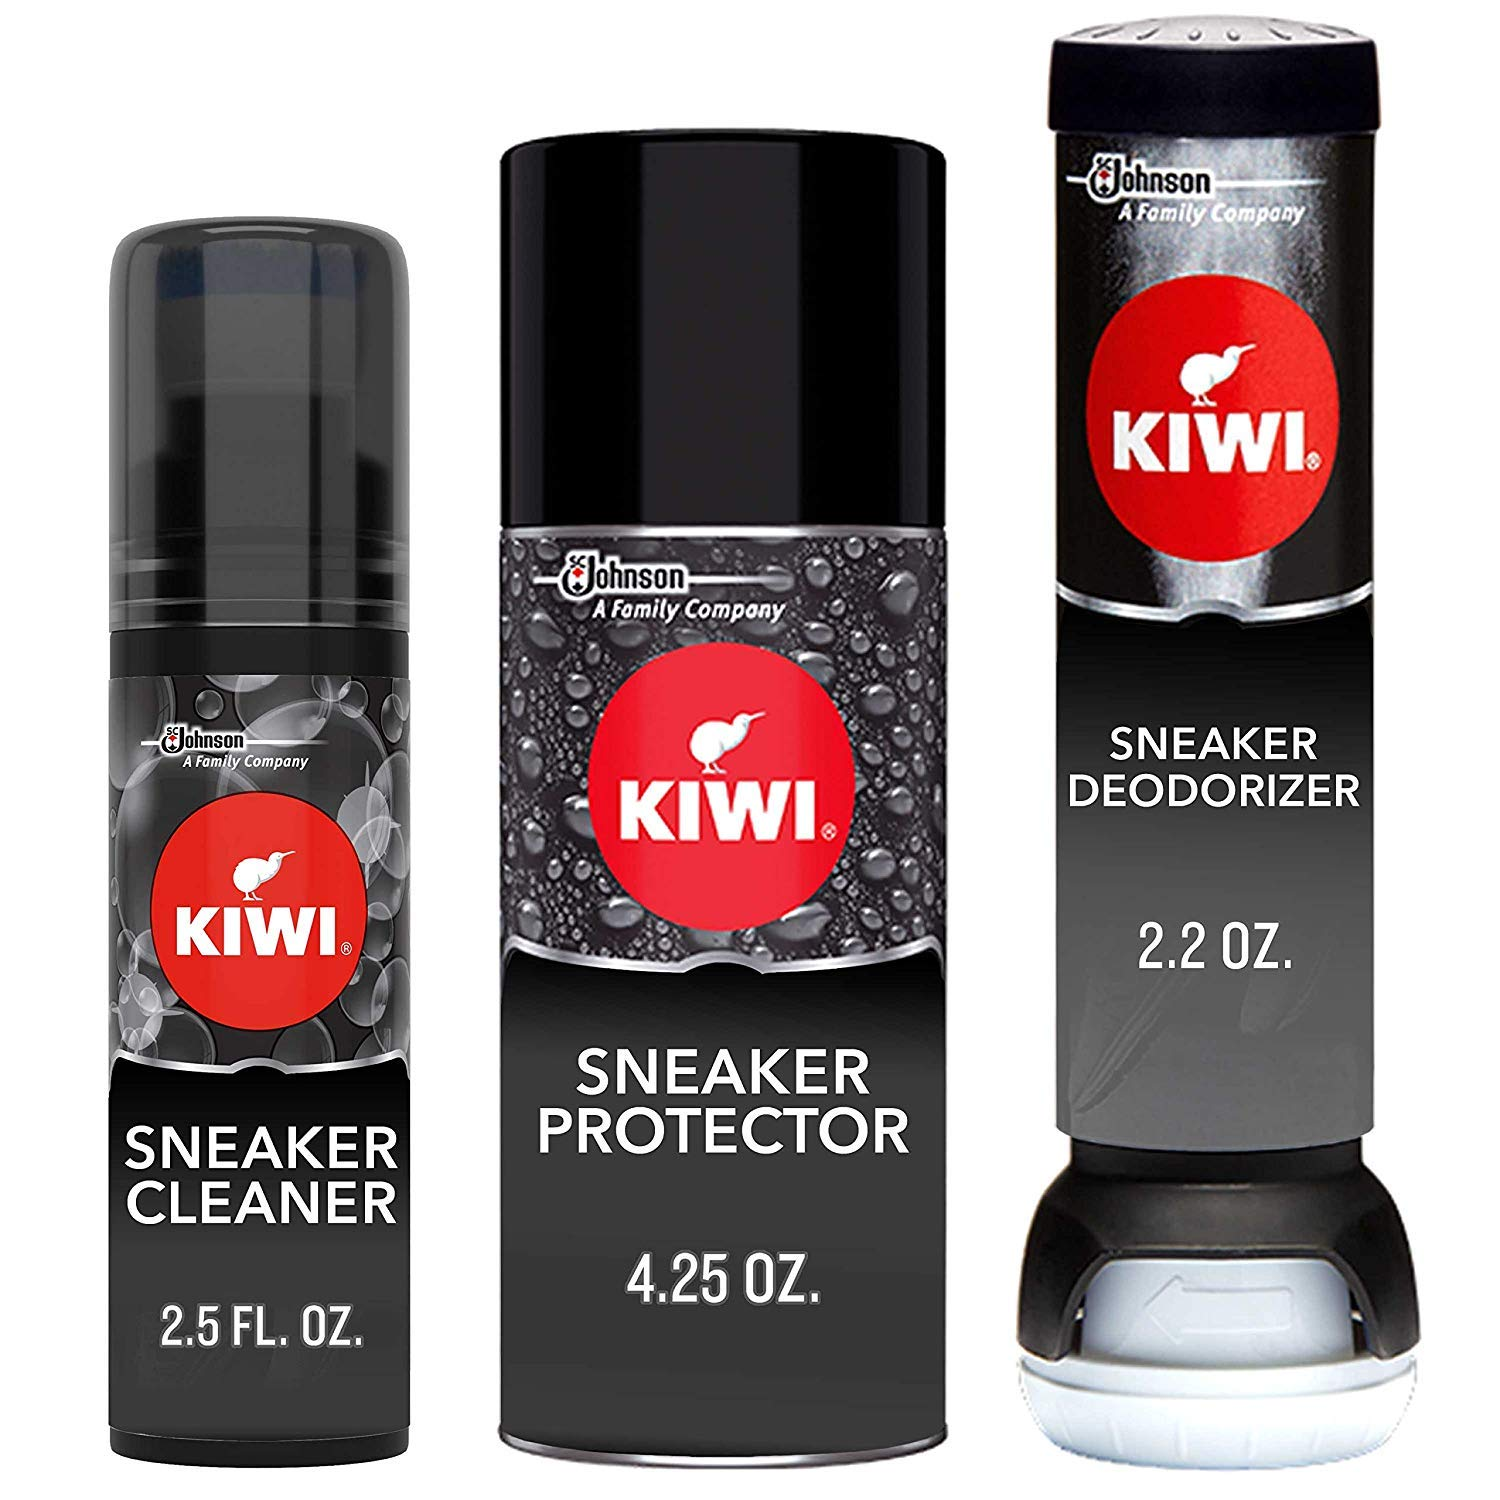 KIWI Sneaker Care Kit - Cleans Shoes, Repels Stains and Removes Odors. 3-Step Sneaker Care System (Pack of 3)